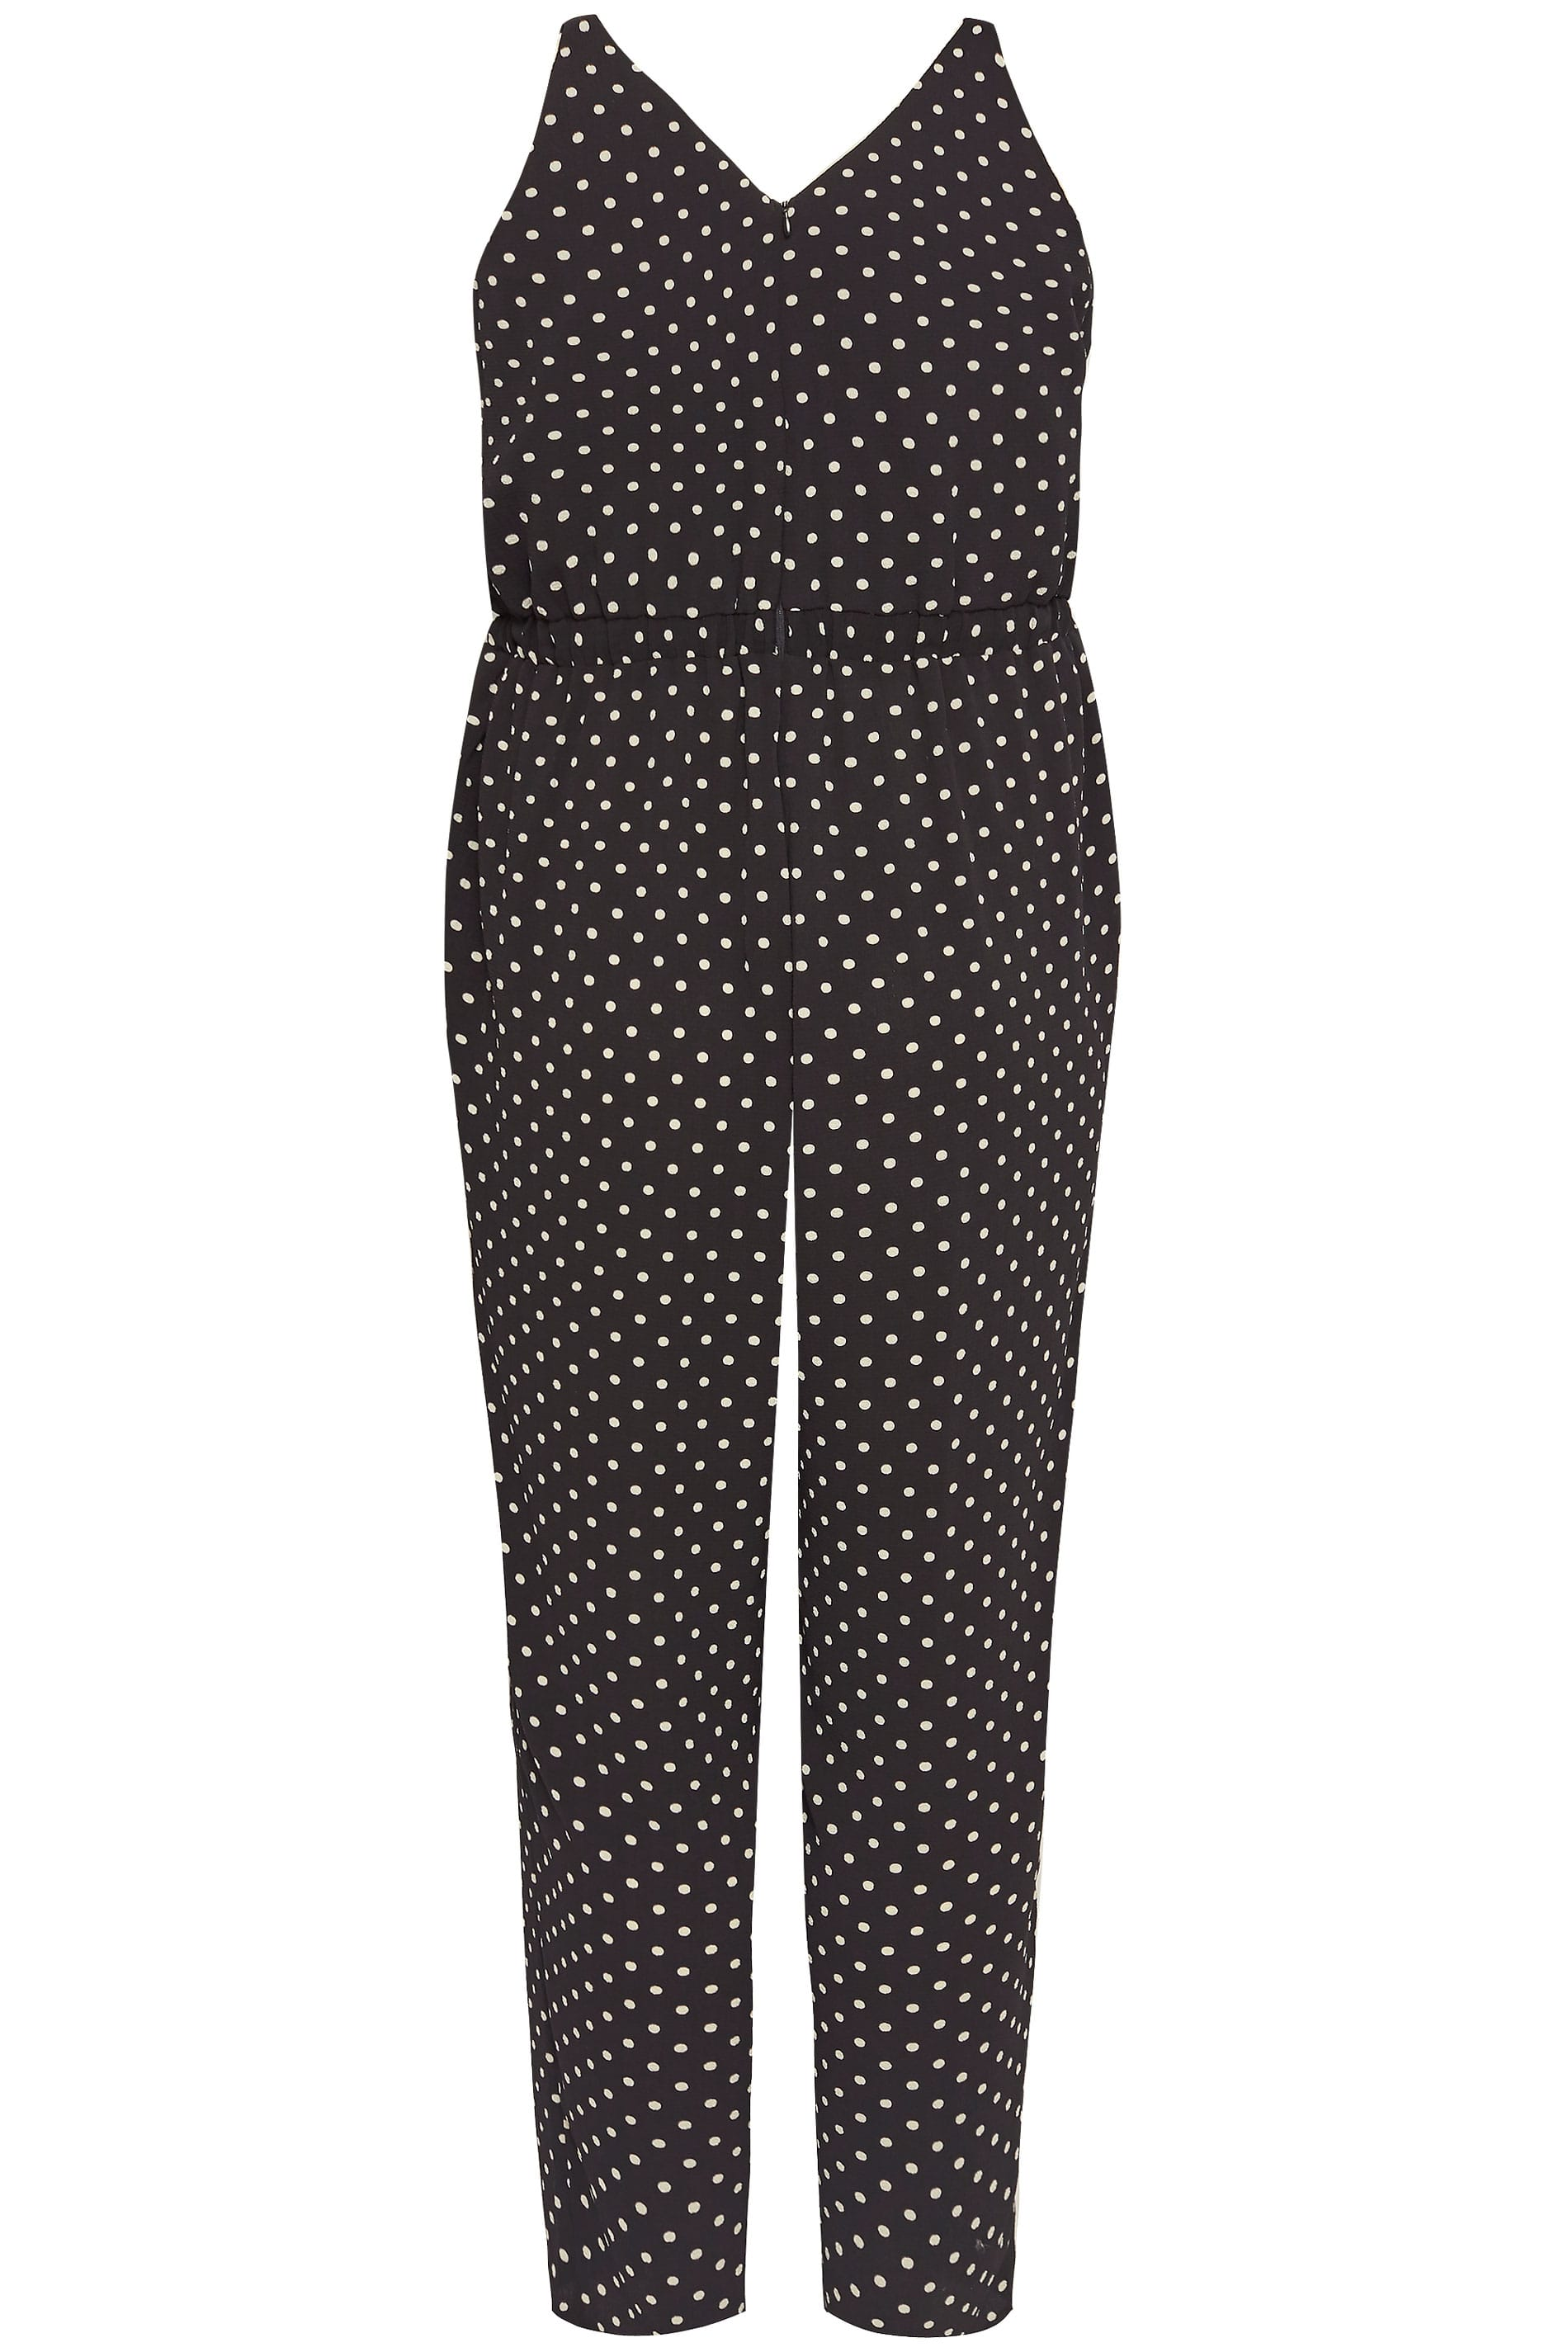 Plus Size Black Polka Dot Jumpsuit Sizes 16 To 36 Yours Clothing